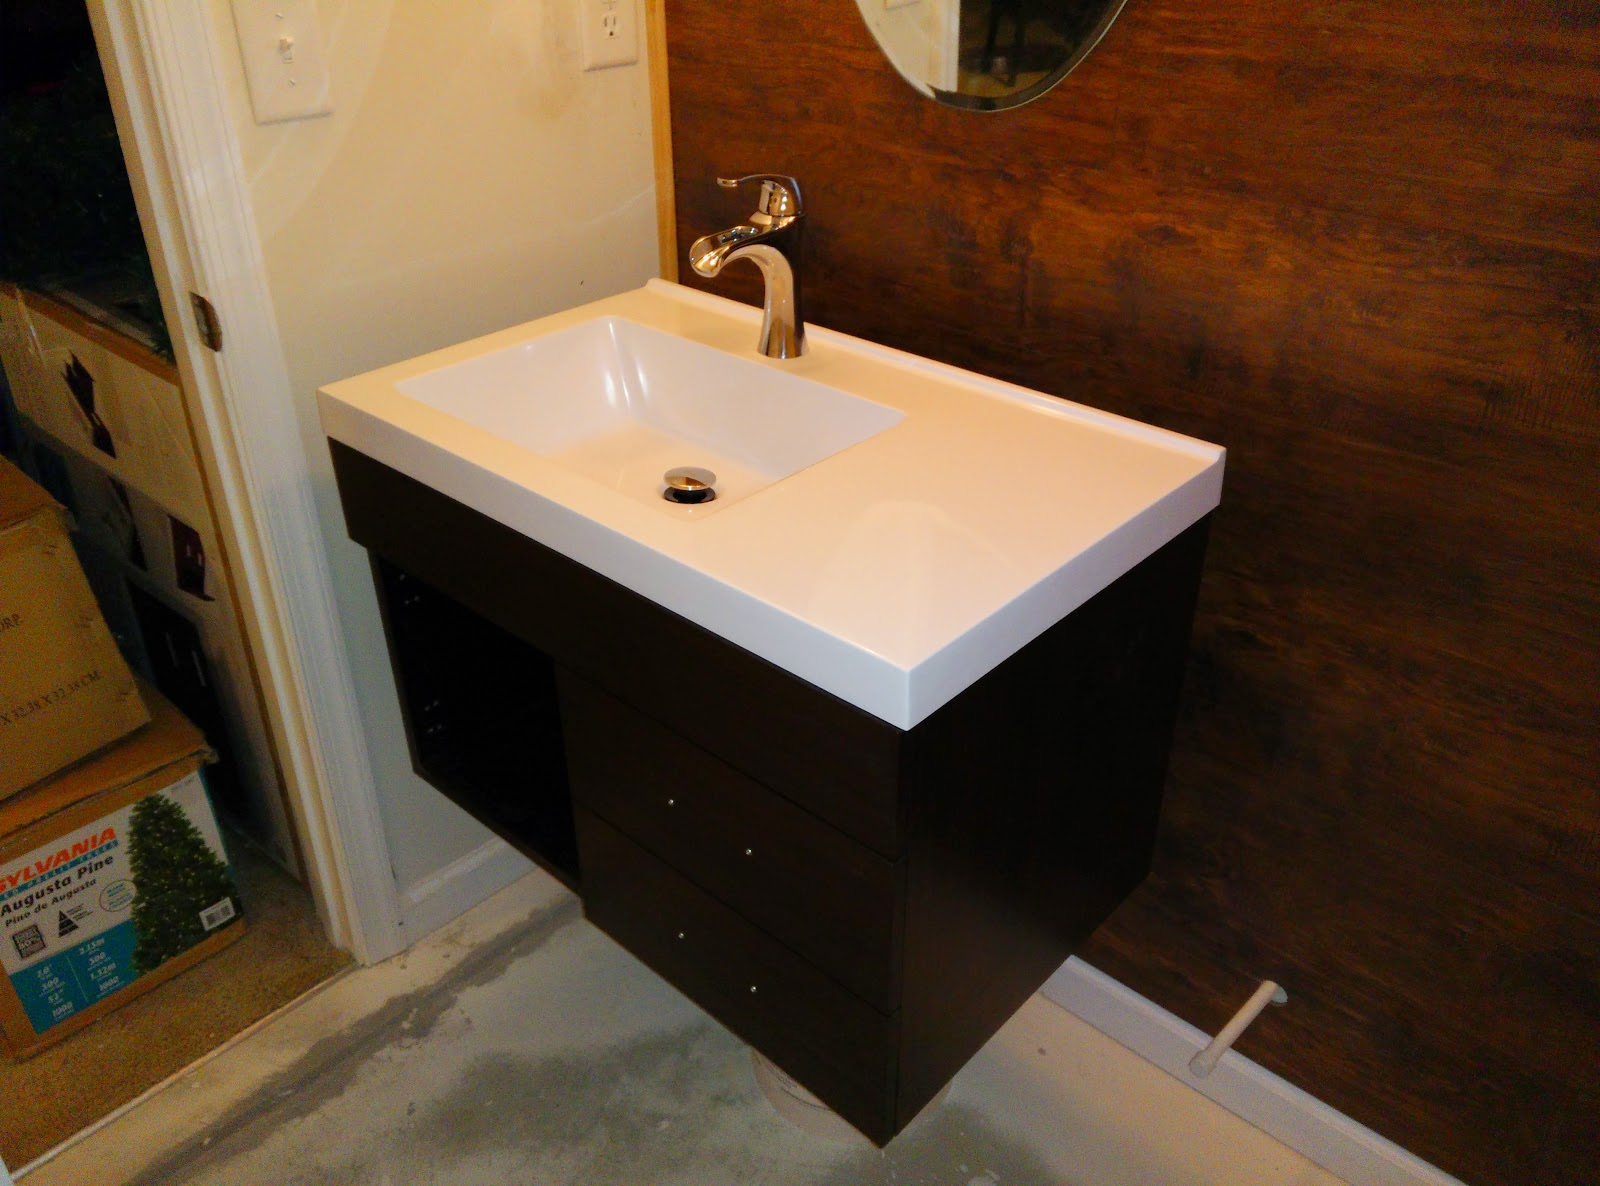 Awesome When the vanity went in being that this space is typically meant for a pedestal sink there wasnt much elbow room next to the toilet